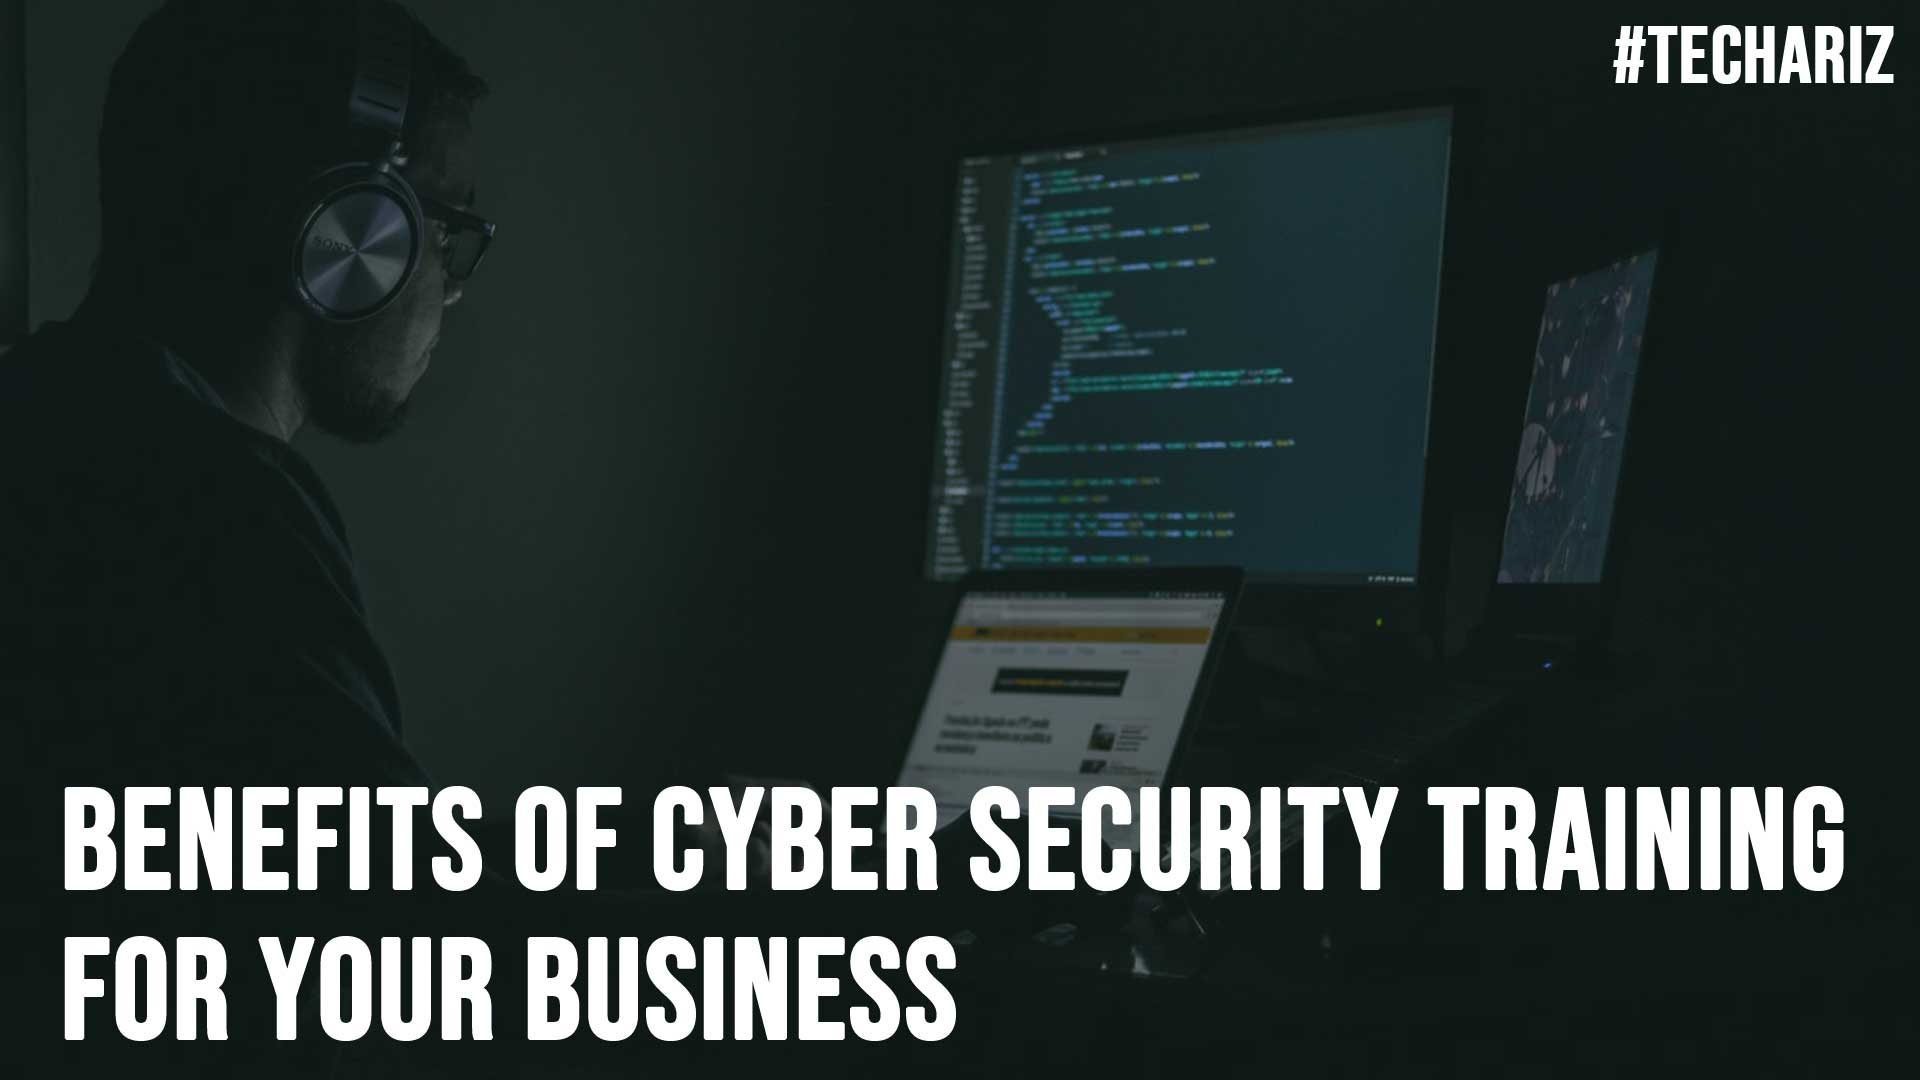 Benefits of Cyber Security Training for Your Business